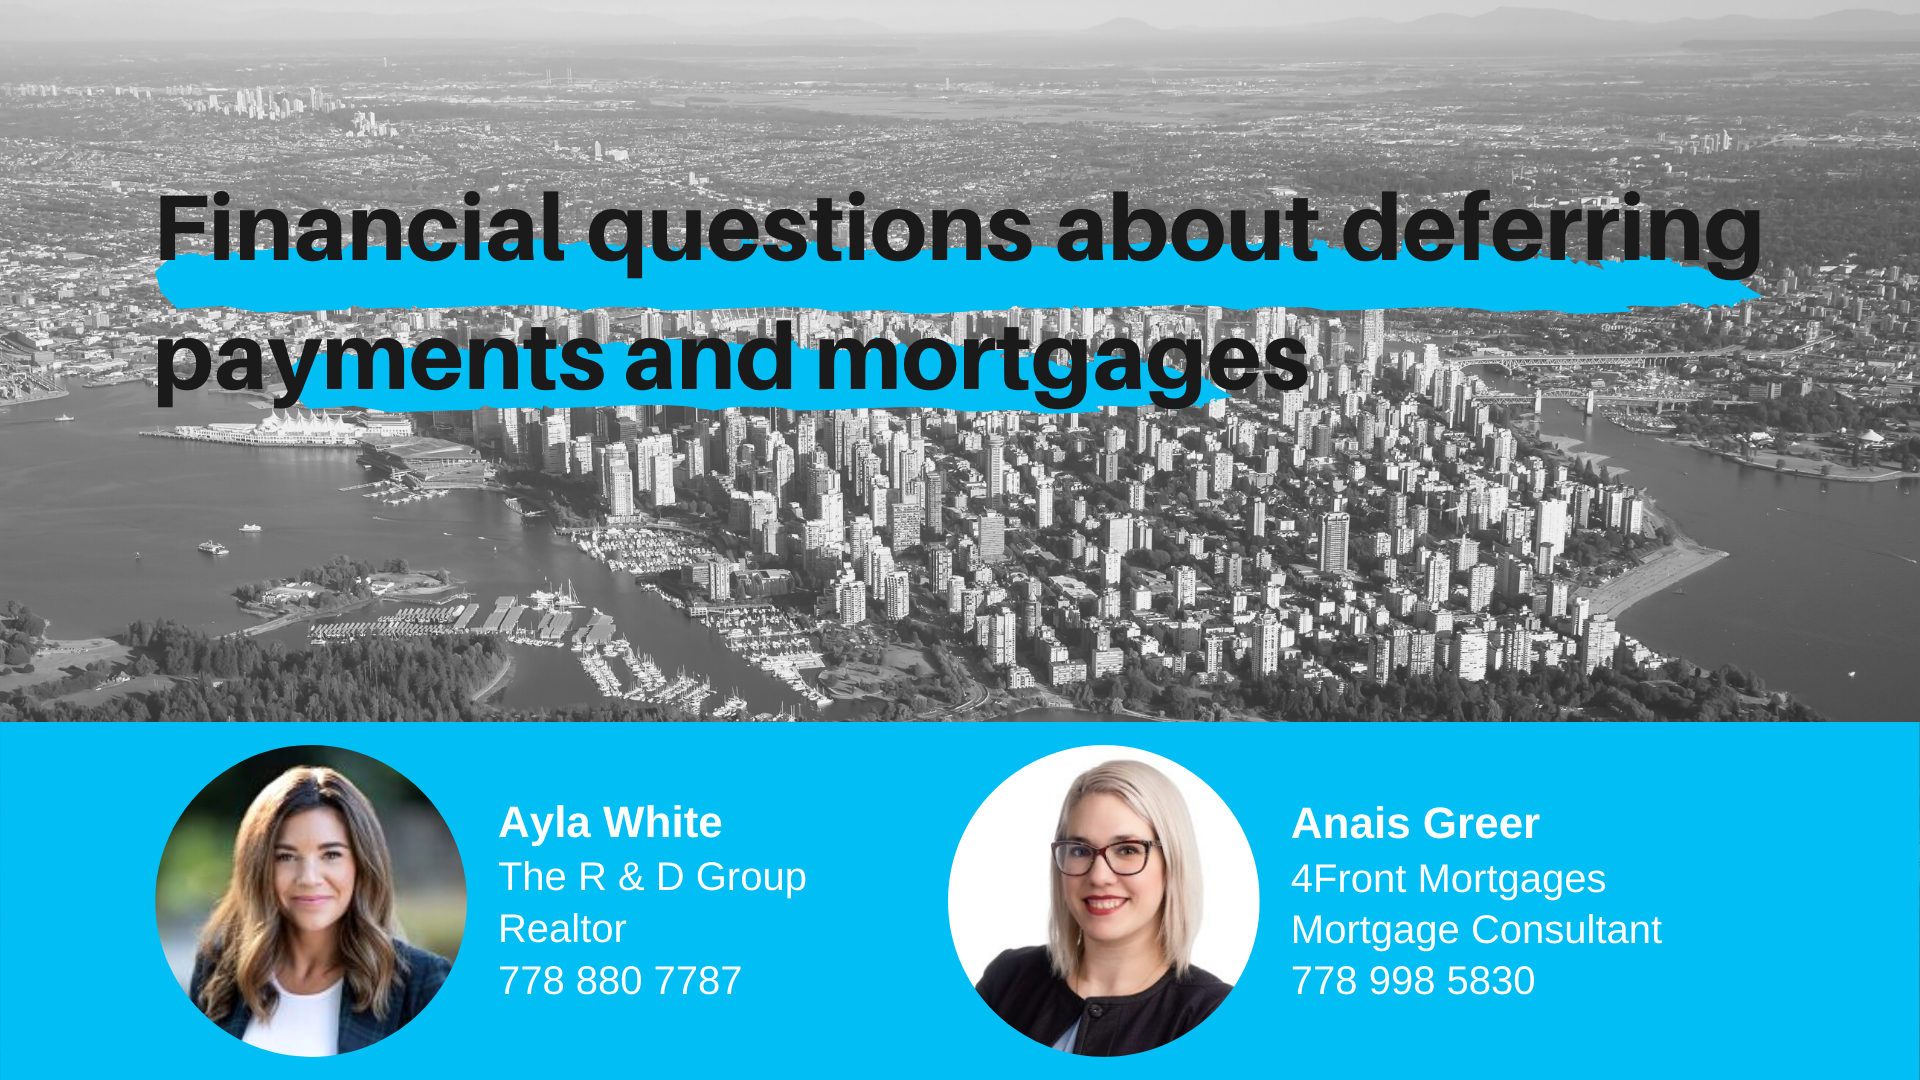 What's Happening with Mortgages and Real Estate during COVID?